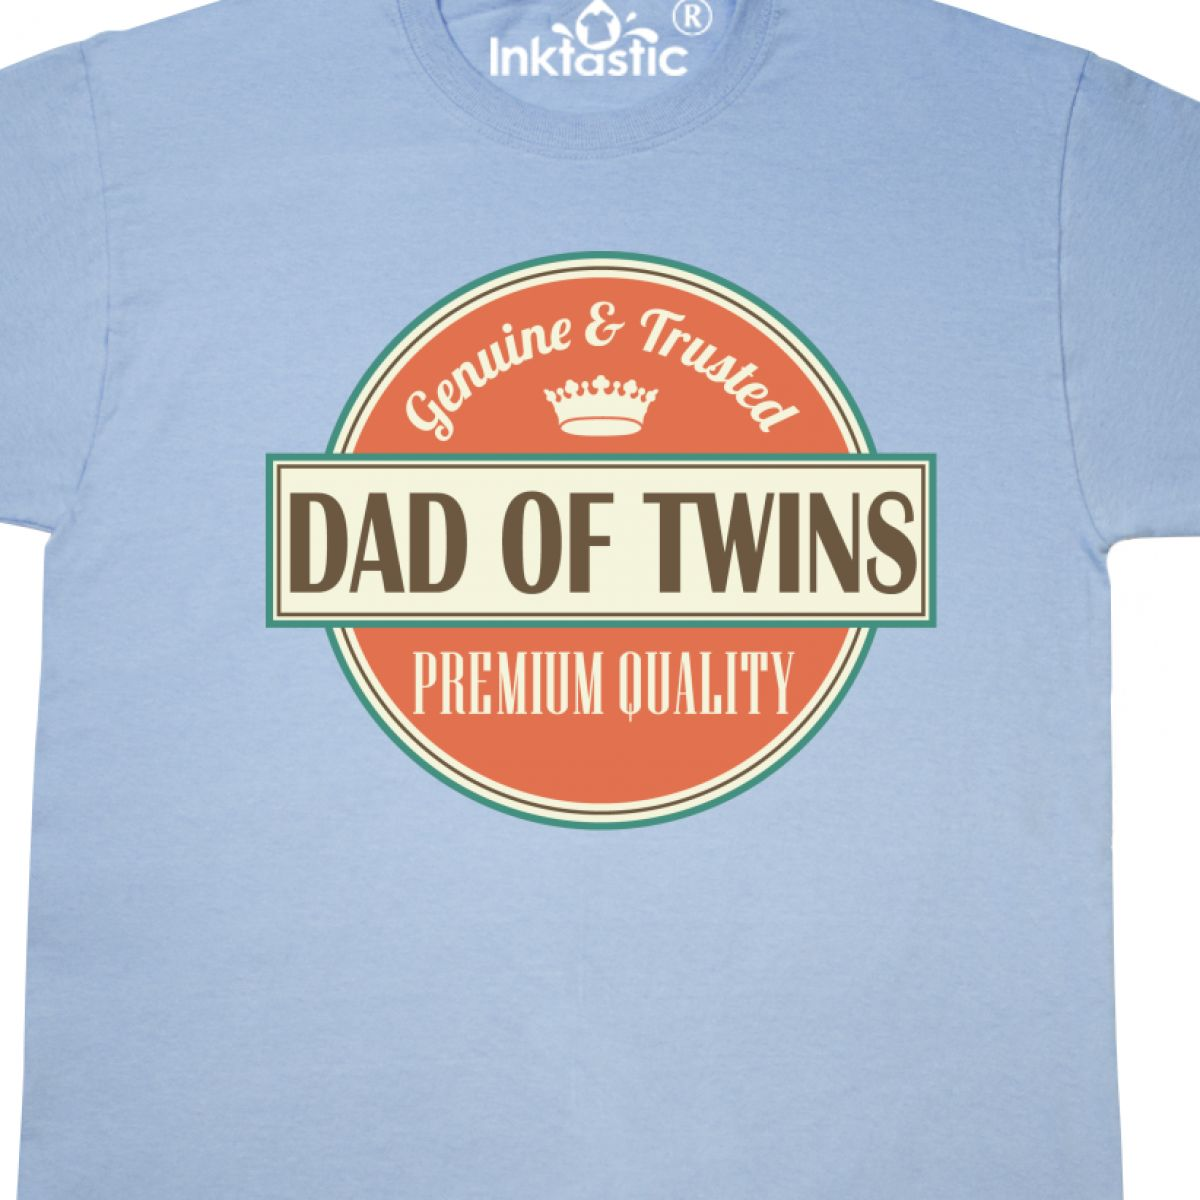 f9936394 Inktastic Dad Of Twins Vintage T-Shirt Gift New Fathers Day Having ...